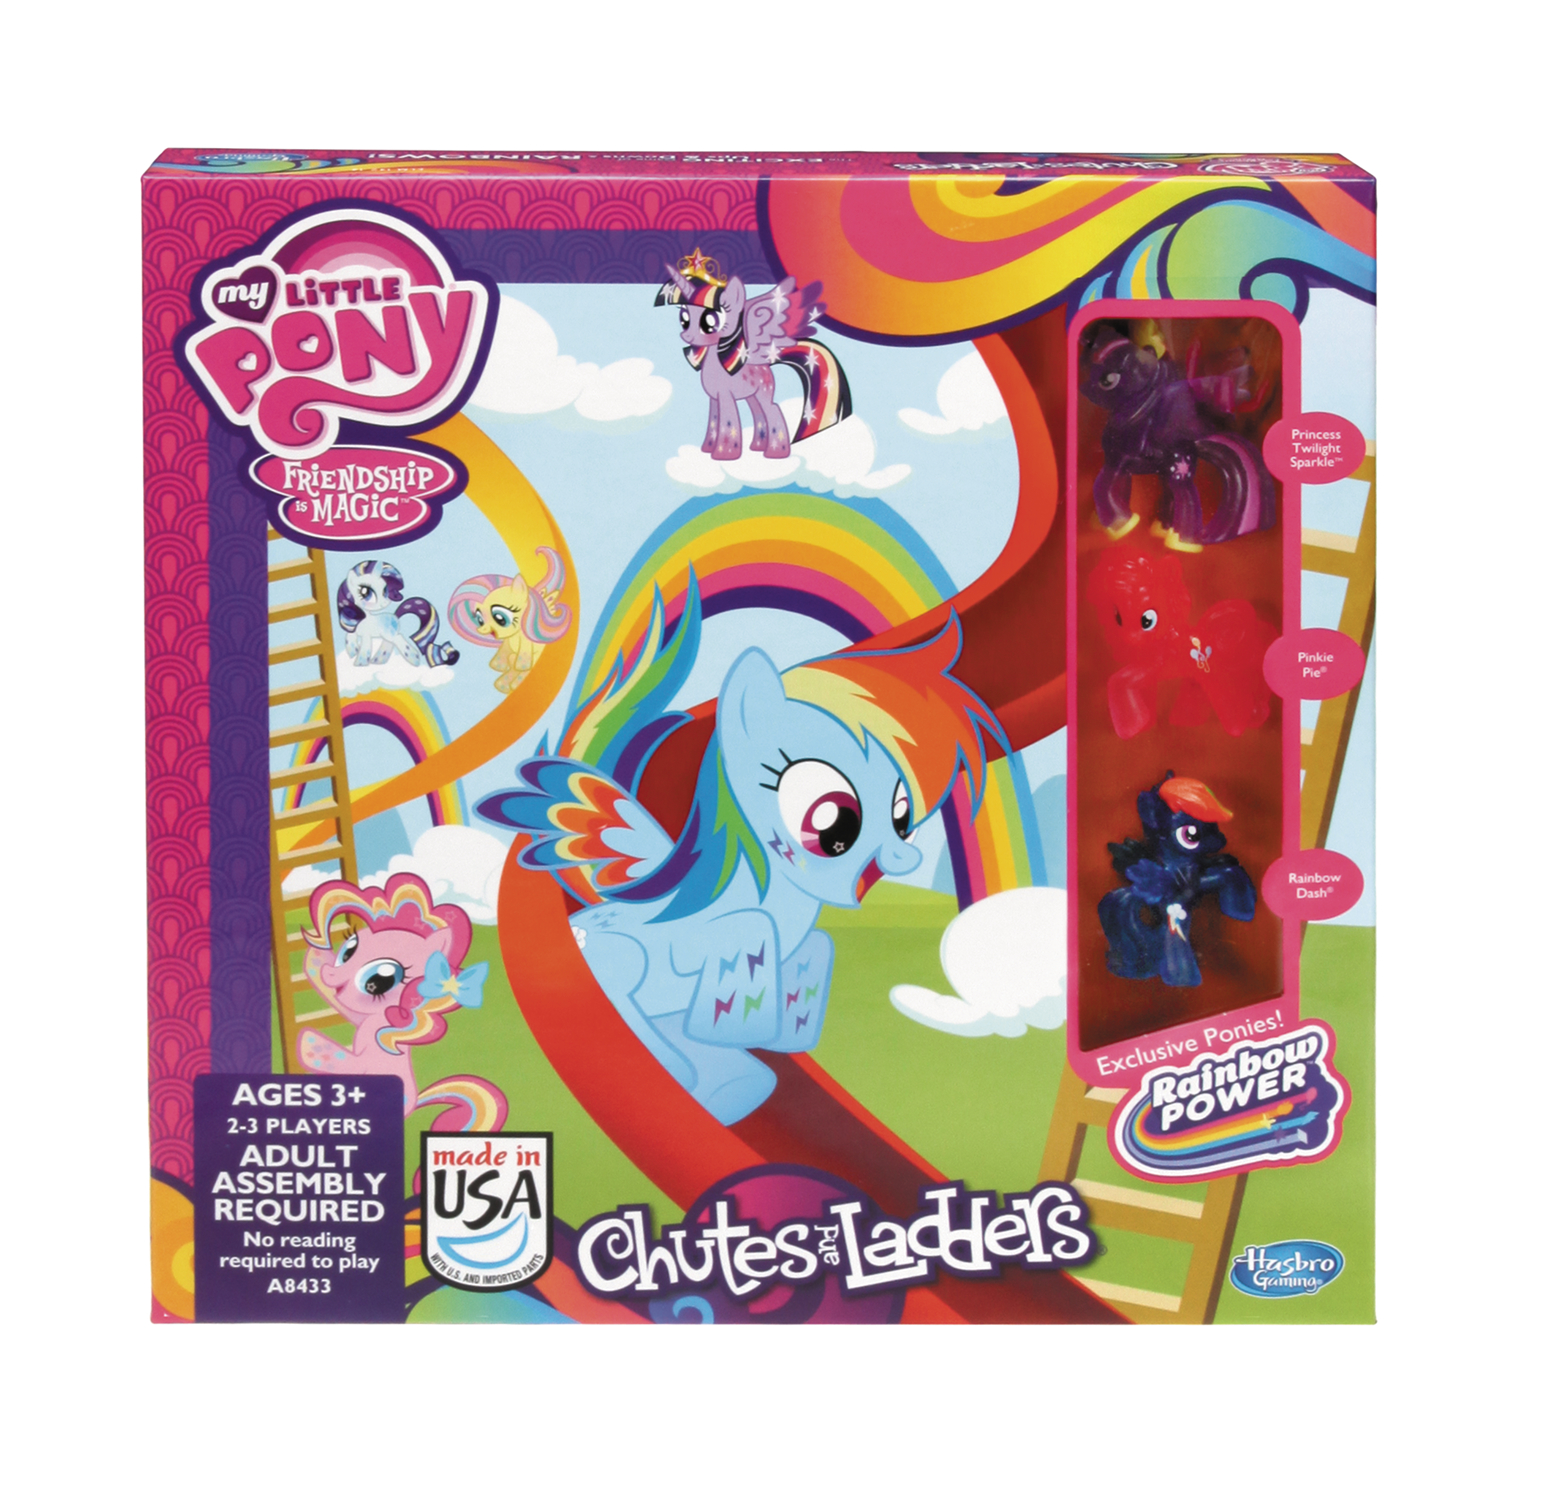 CHUTES & LADDERS MY LITTLE PONY EDITION CS